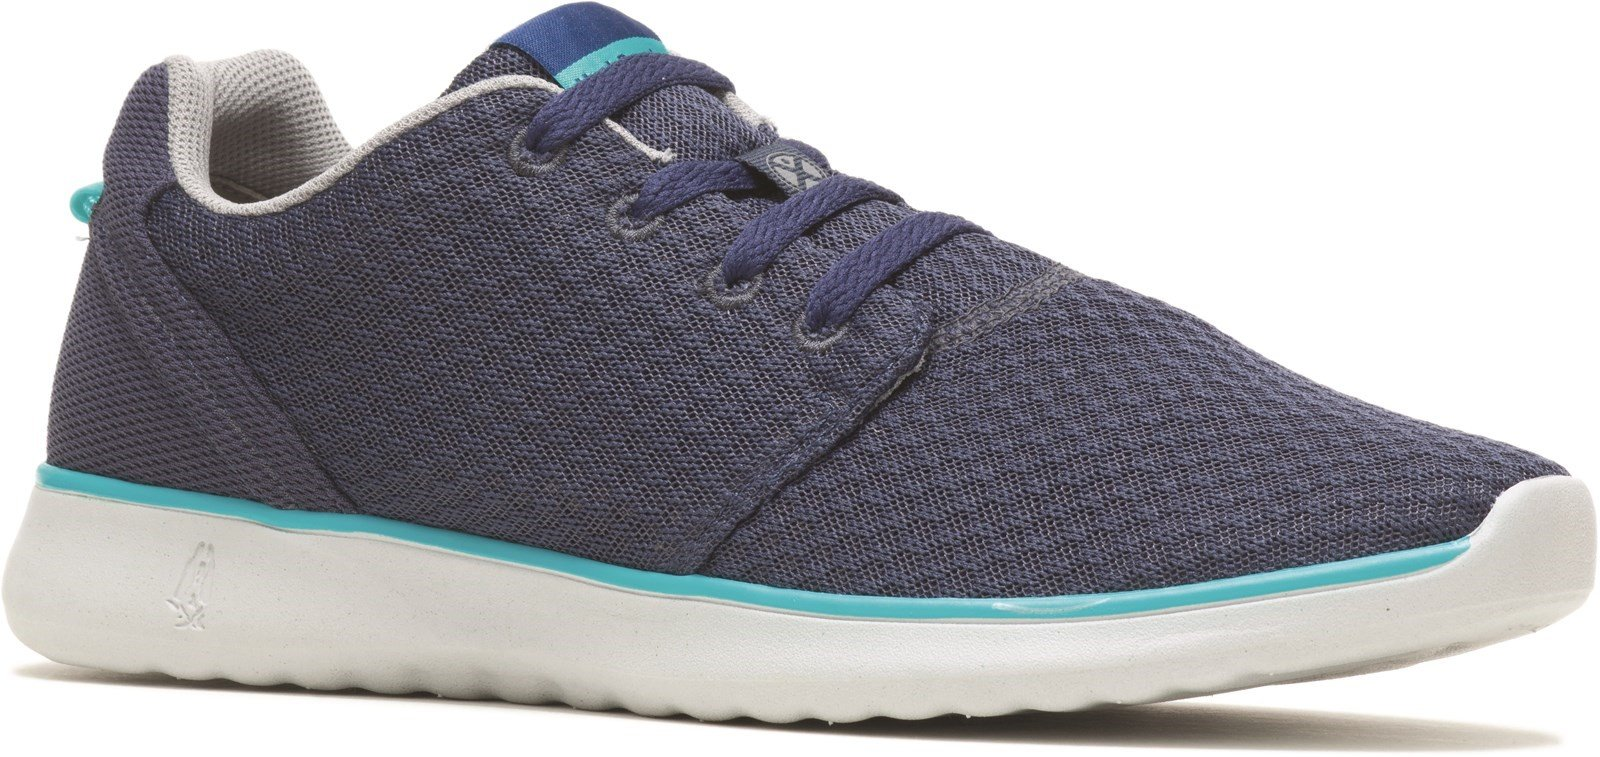 Hush Puppies Men's Good Lace Trainer Various Colours 31986 - Navy 6